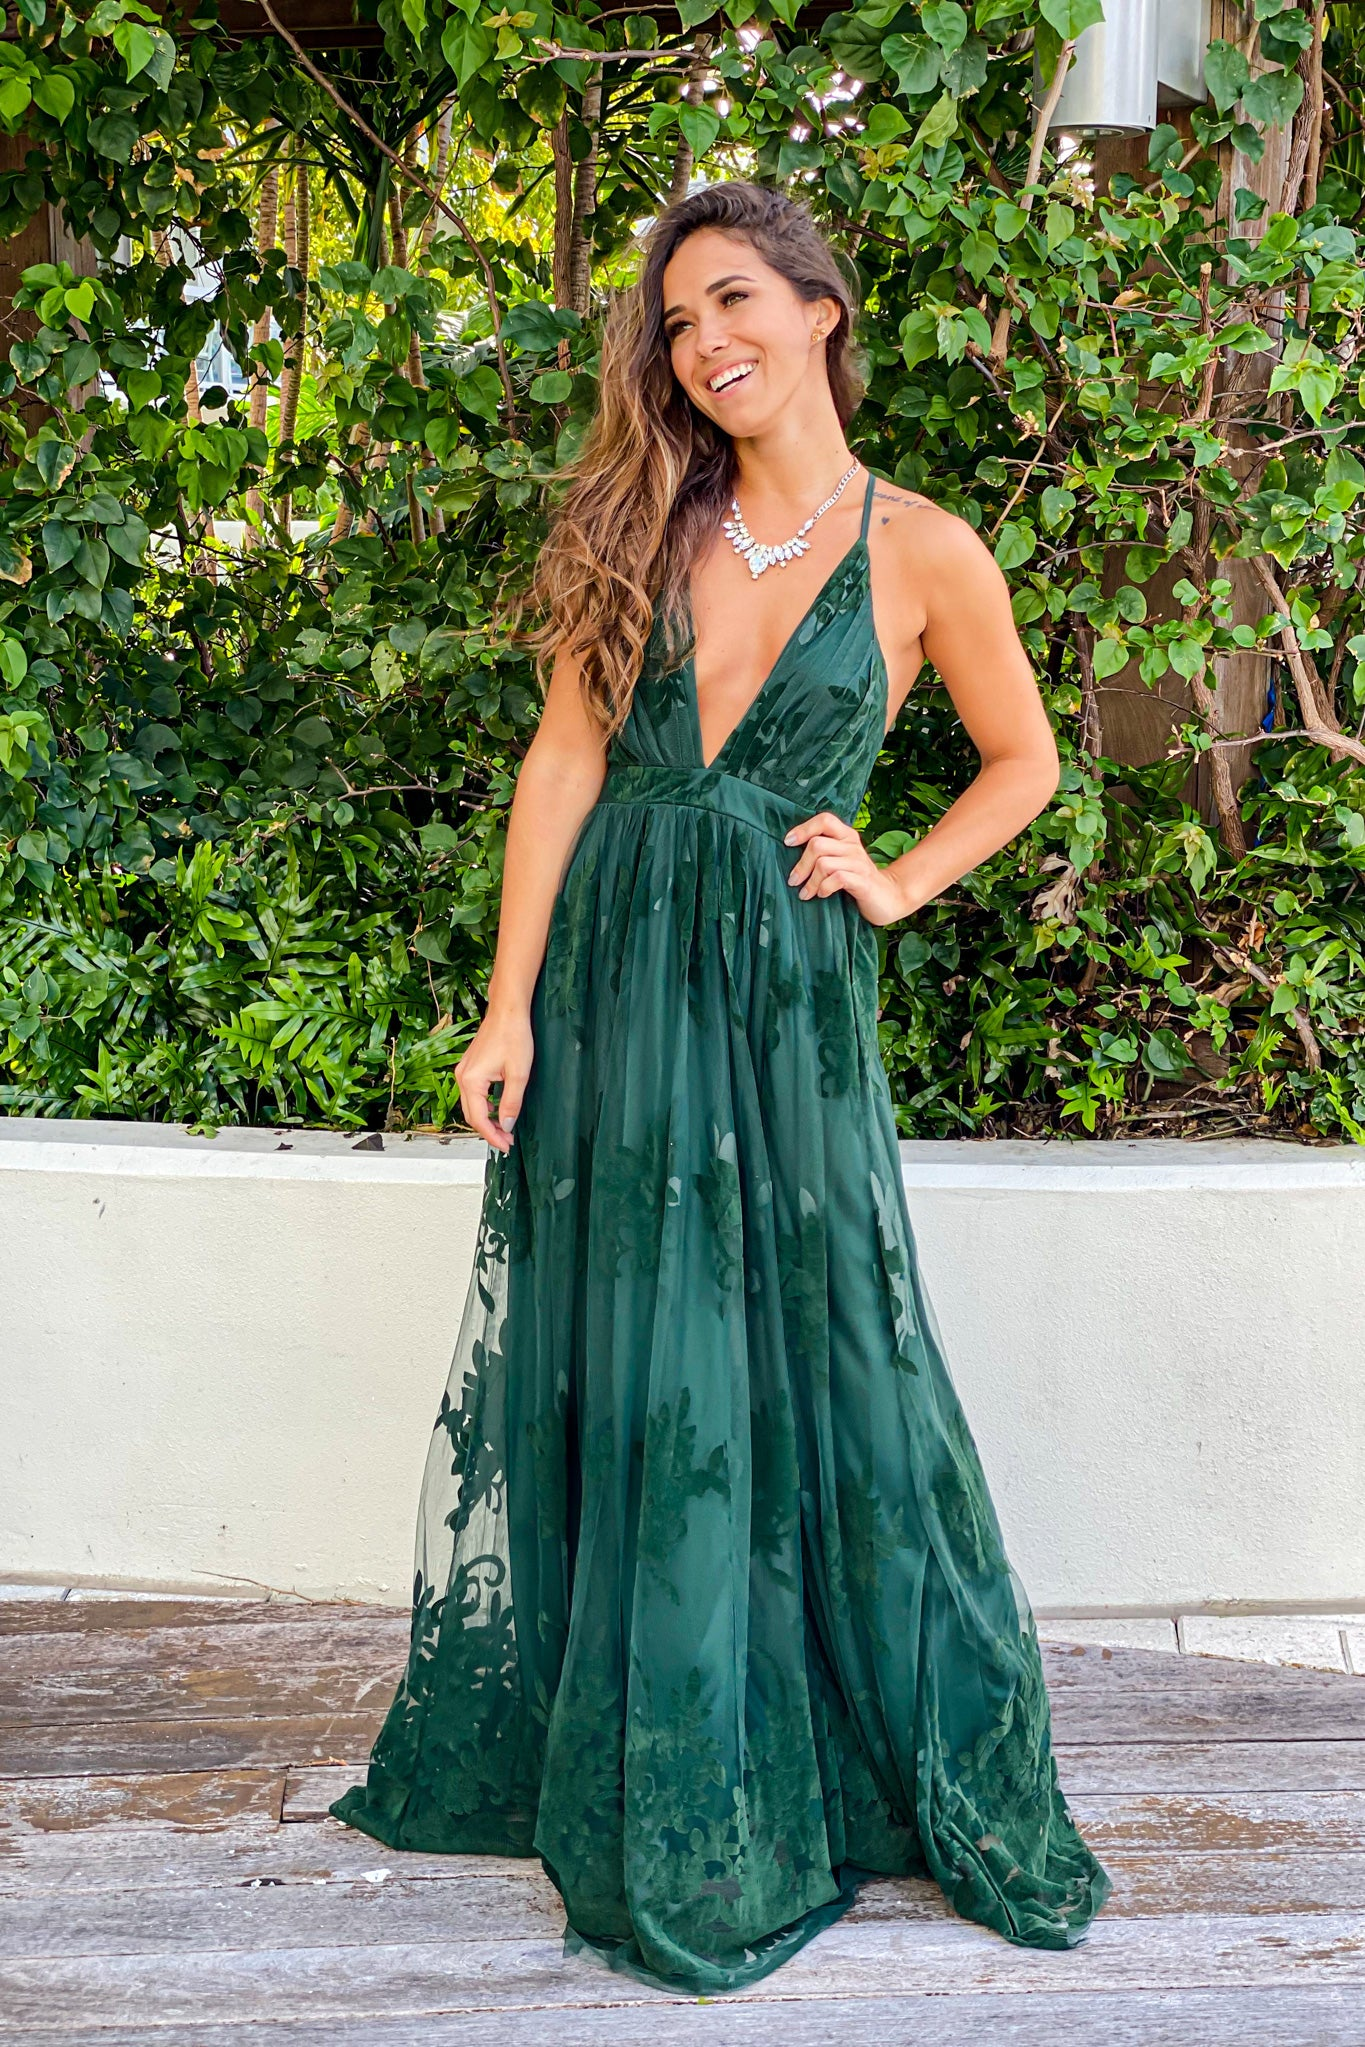 Hunter Green Floral Tulle Maxi Dress with Criss Cross Back